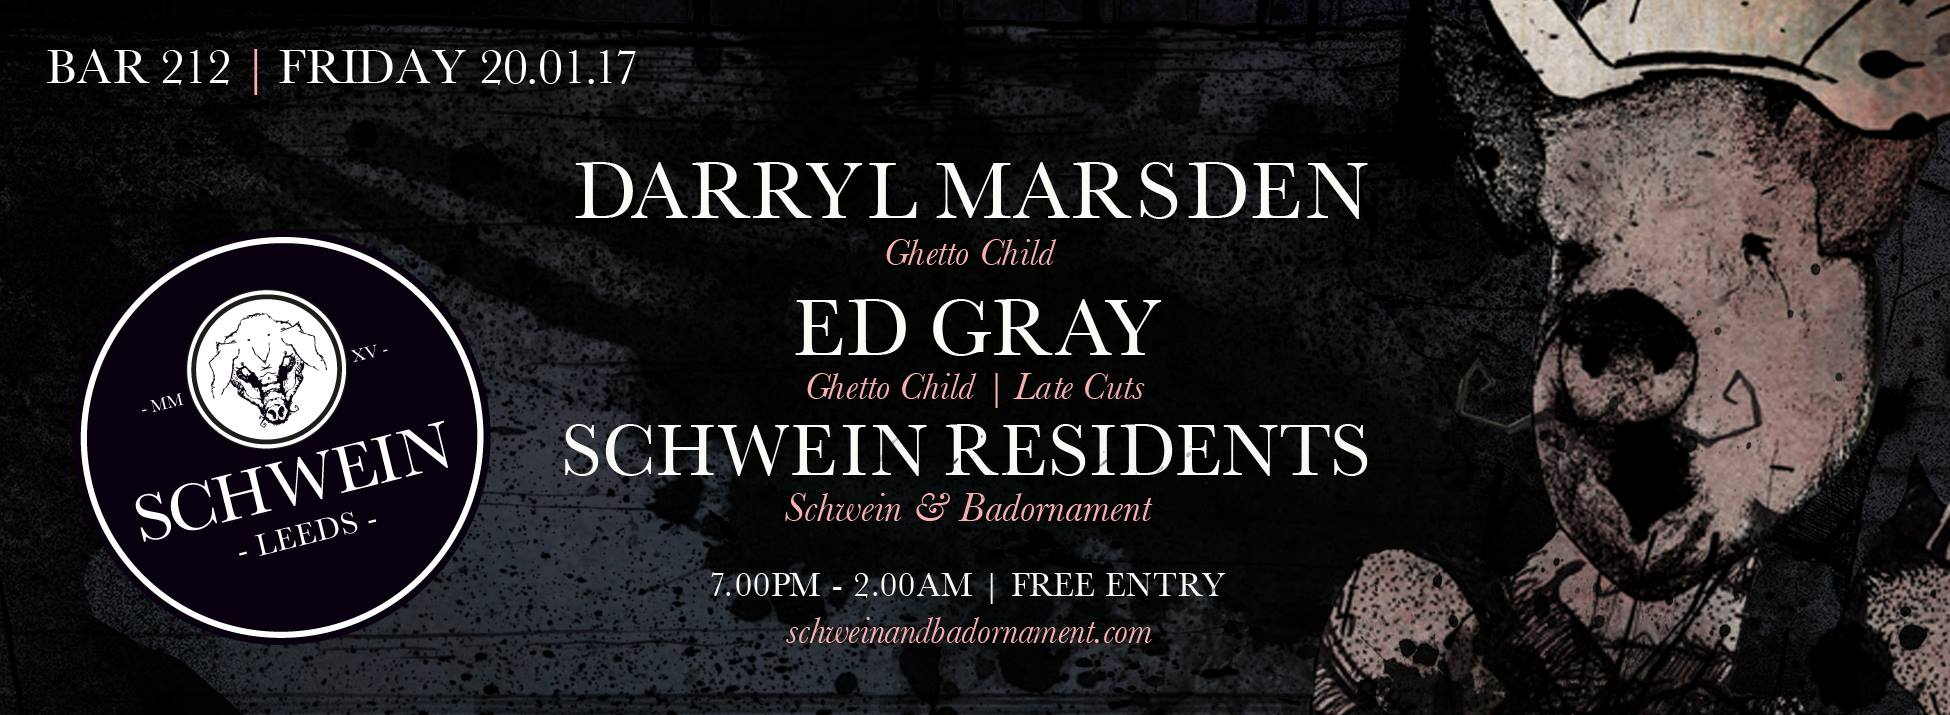 Darryl Marsden & Ed Gray (Ghetto Child) at 212…